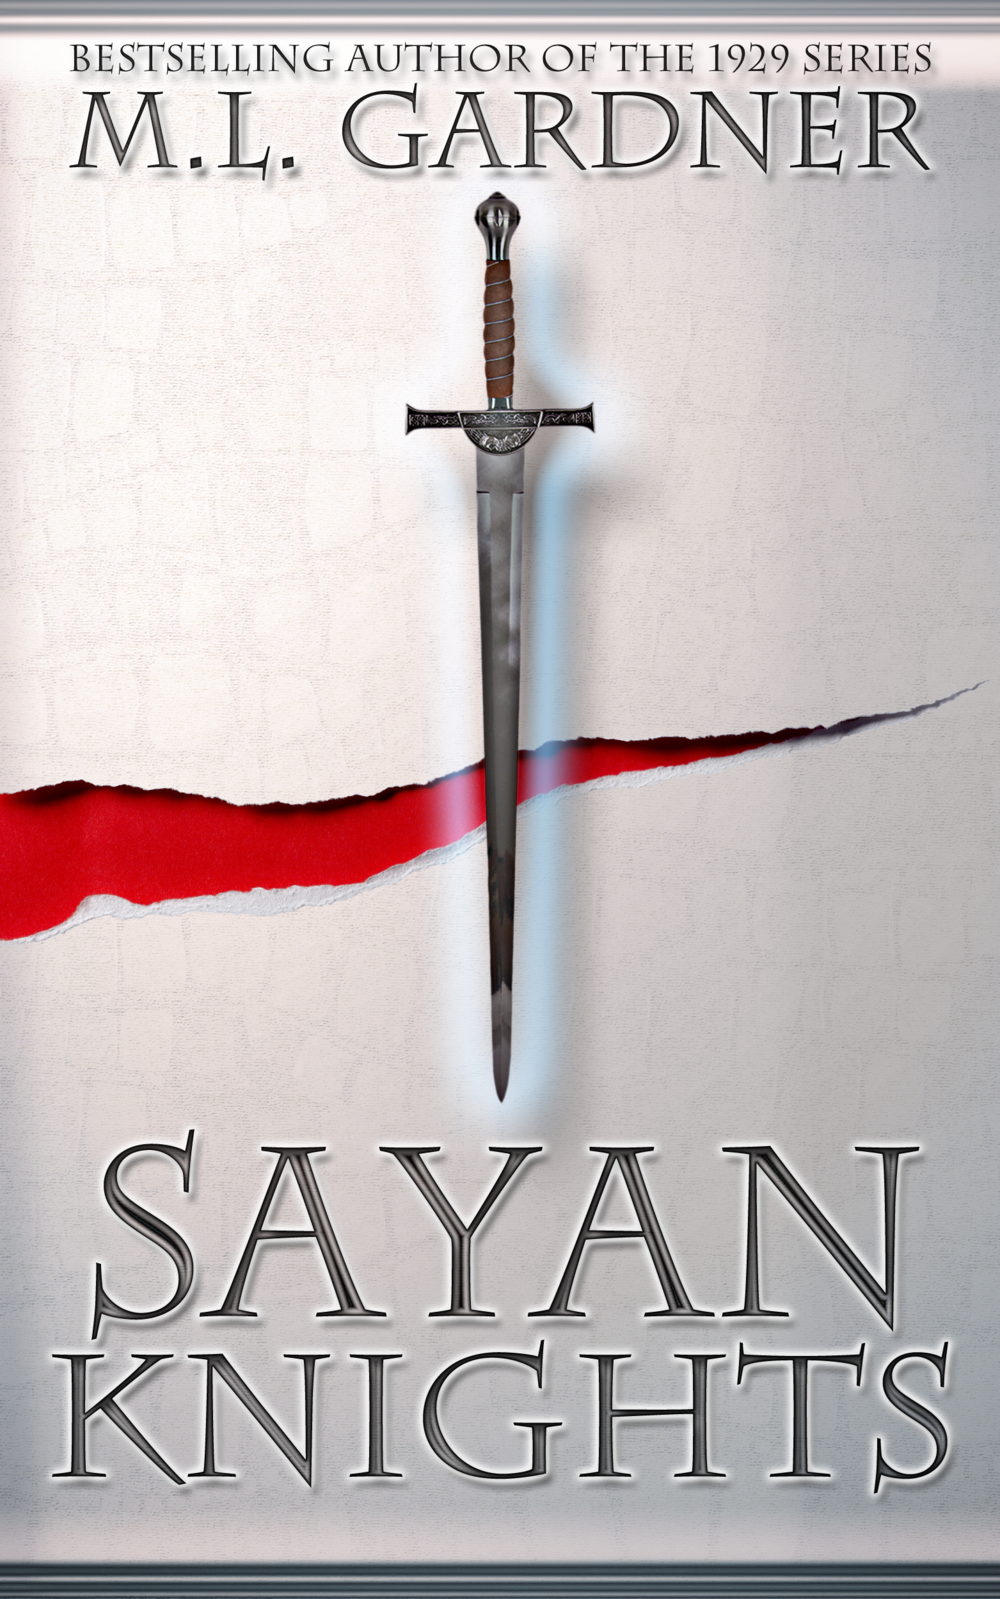 Original cover for M.L. Gardner's Sayan Knights.